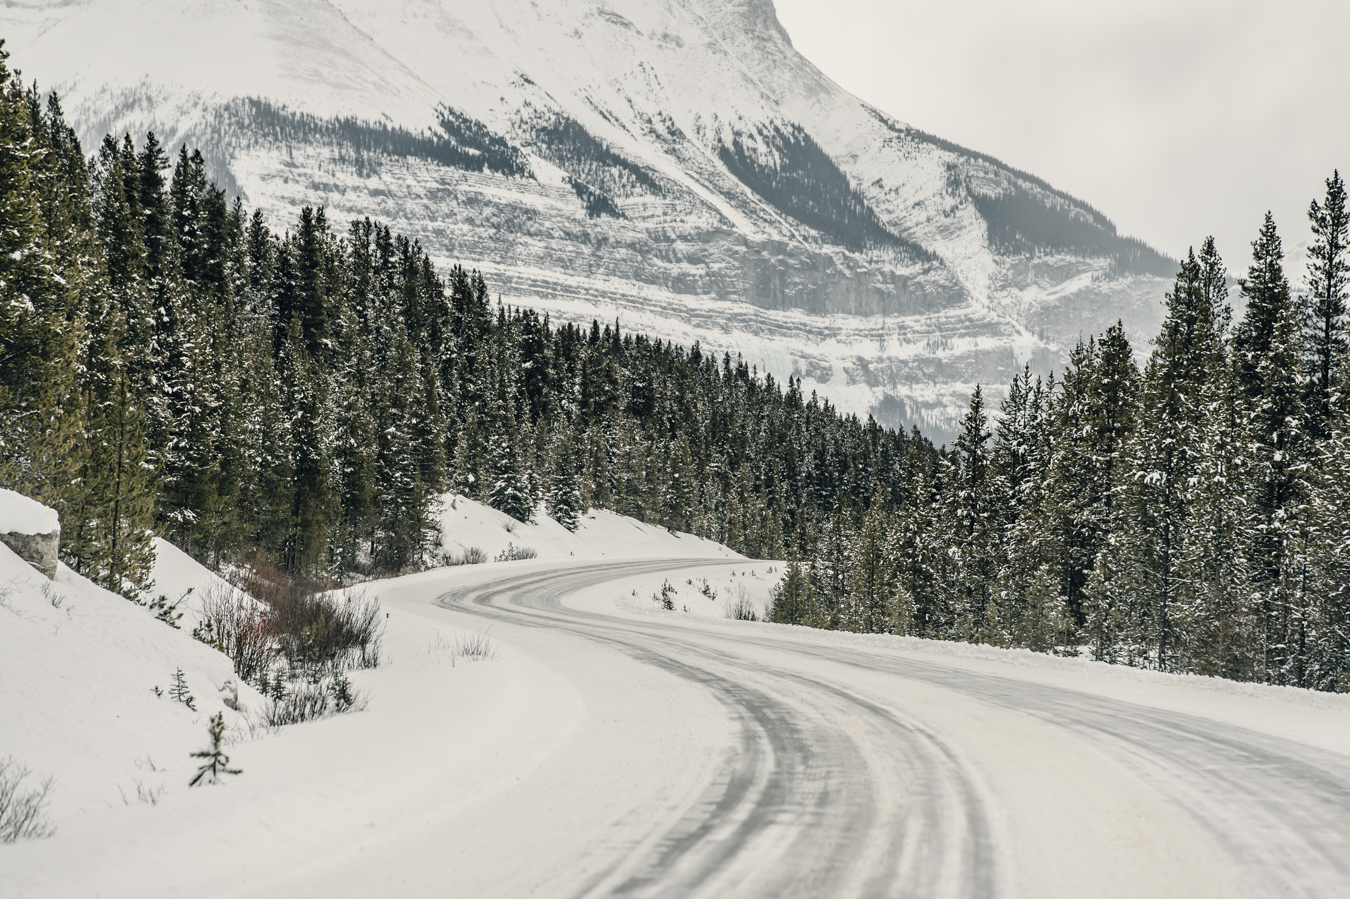 icefields-parkway-christian-frumolt-fotografie_web_small-79